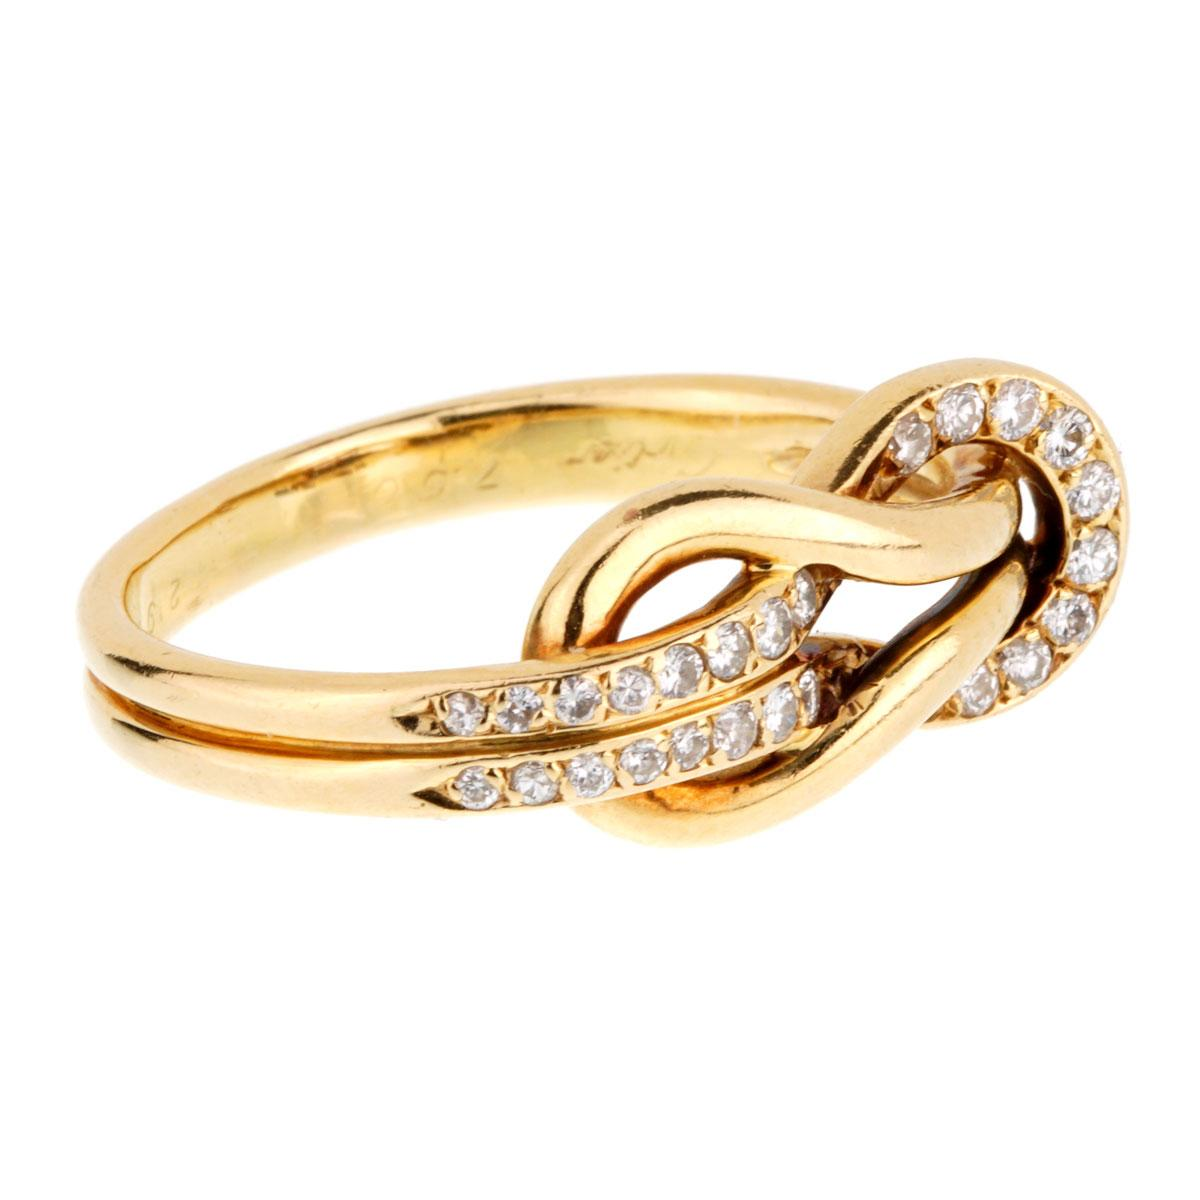 Cartier Love Knot Diamond Gold Ring At 1stdibs